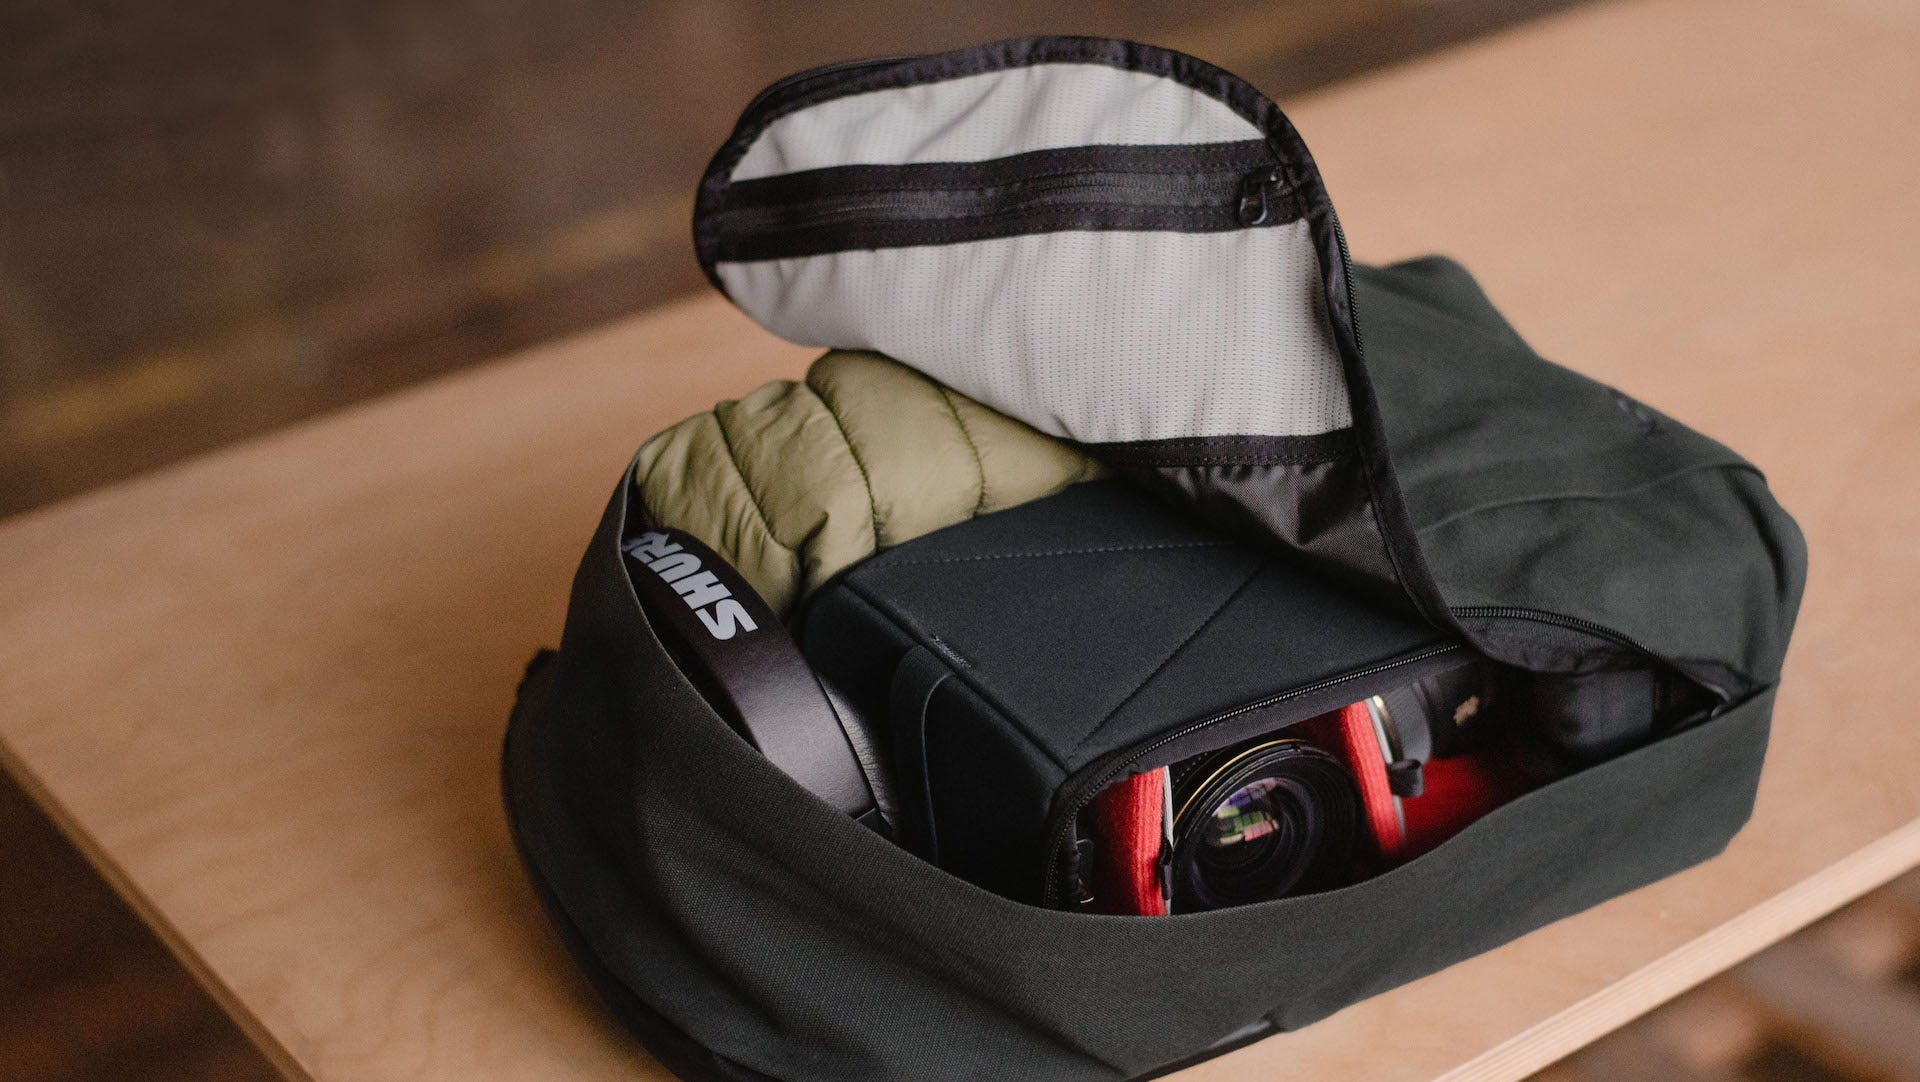 Moment Travelwear backpack open and packed